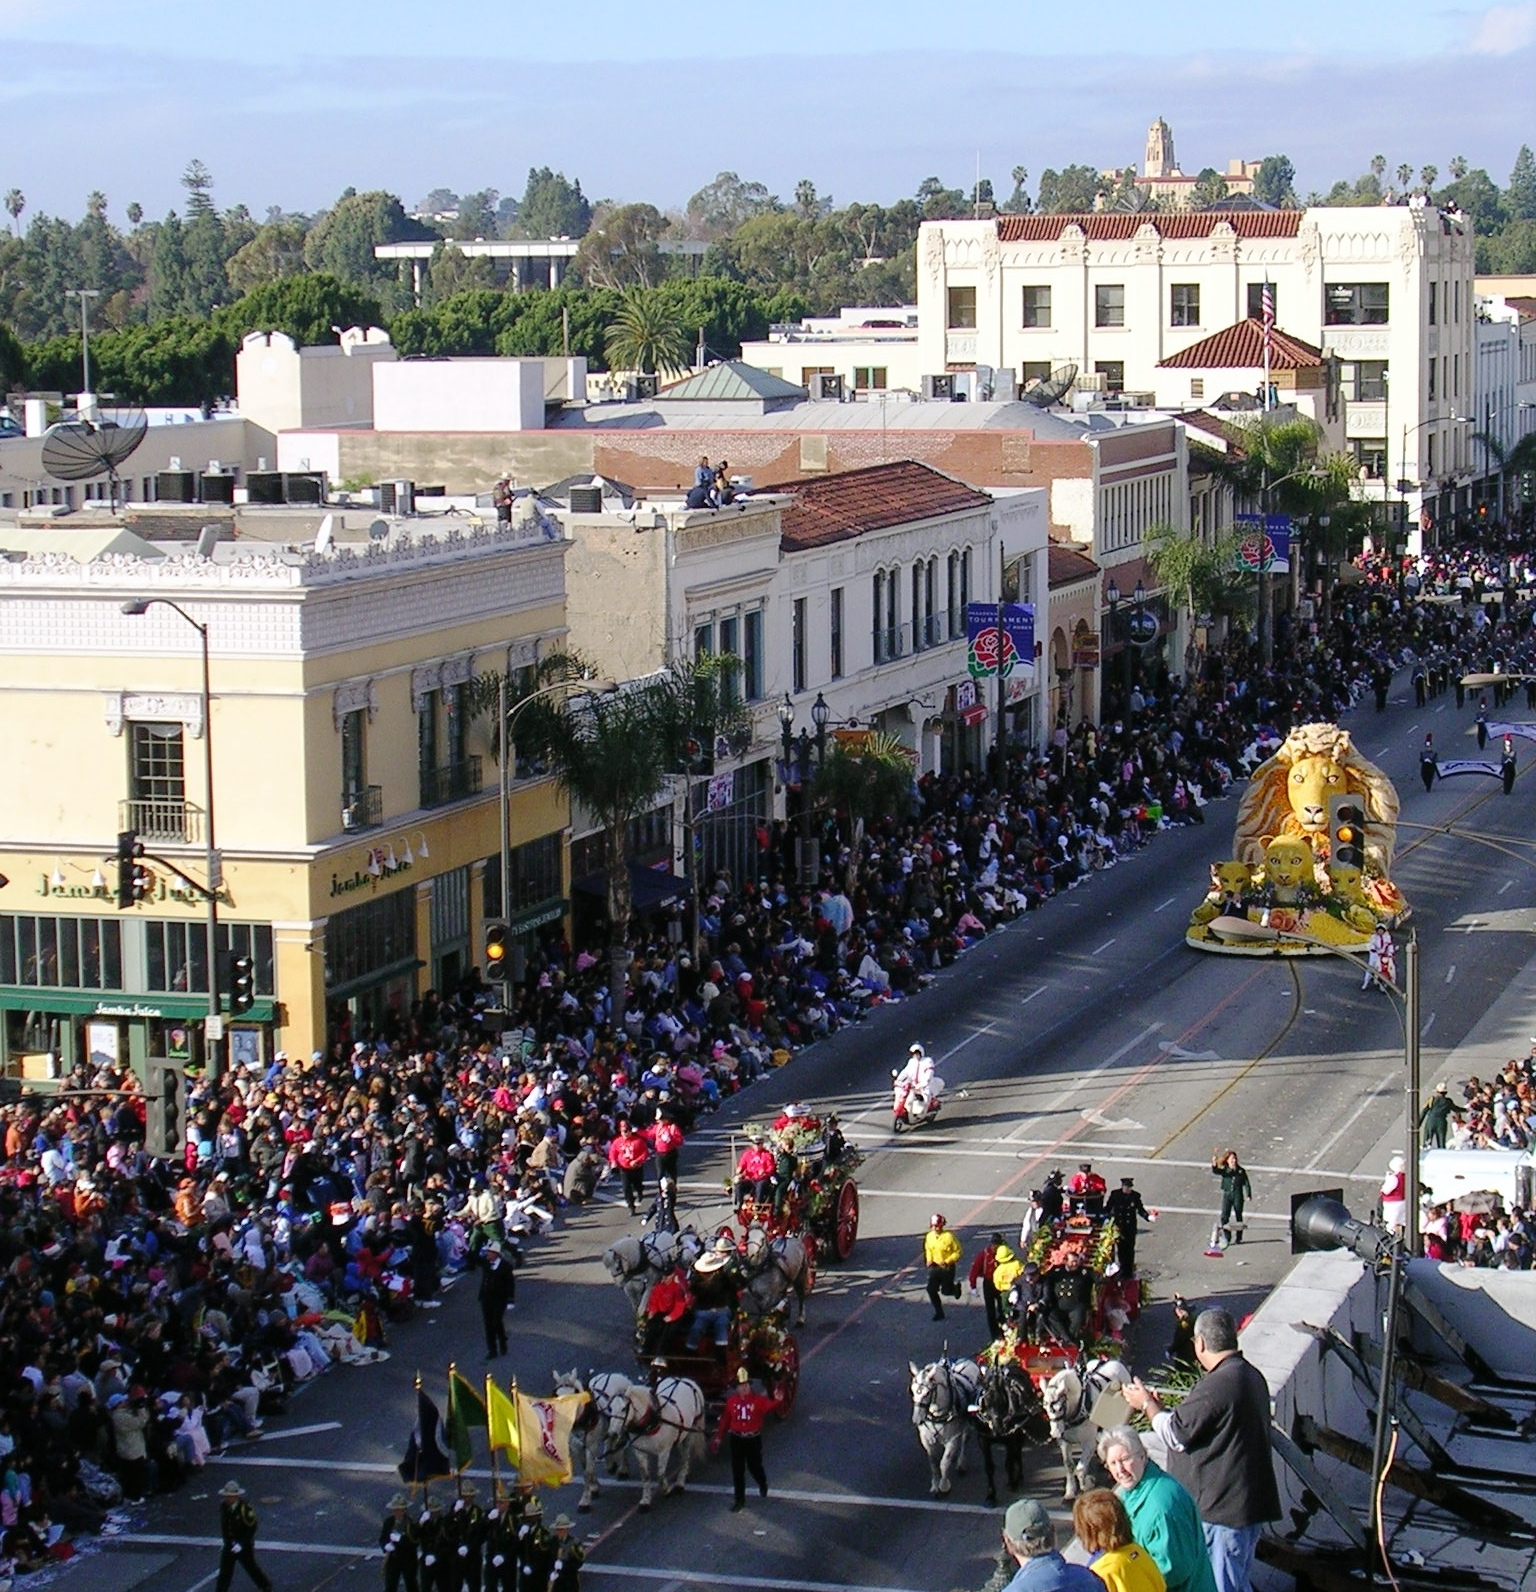 The Tournament of Roses parade passes through Old Pasadena. Pasadena hosted the first Tournament of Roses parade in 1890.